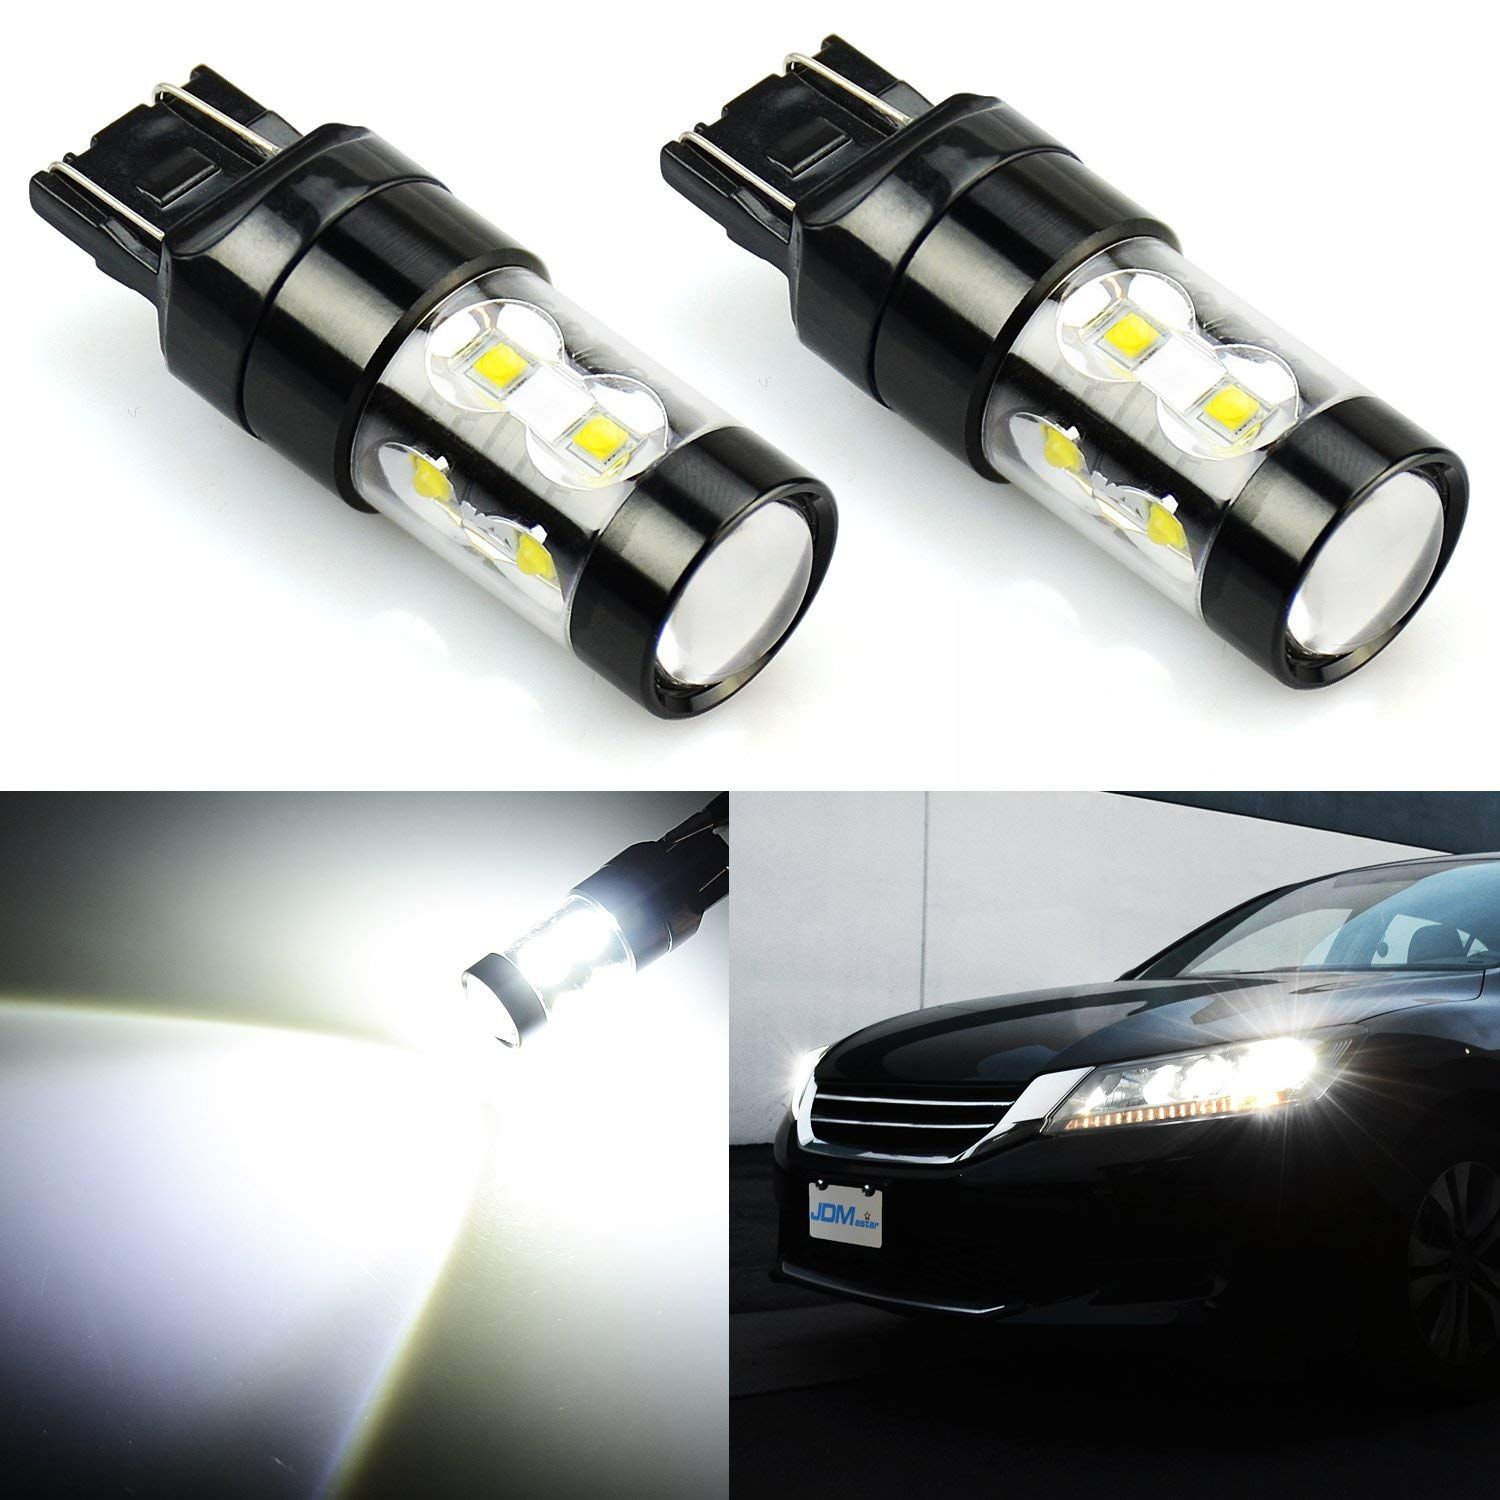 medium resolution of jdm astar extremely bright max 50w high power 7444 7443 7441 7440 led fog light bulbs for back up reverse lights xenon white price 12 49